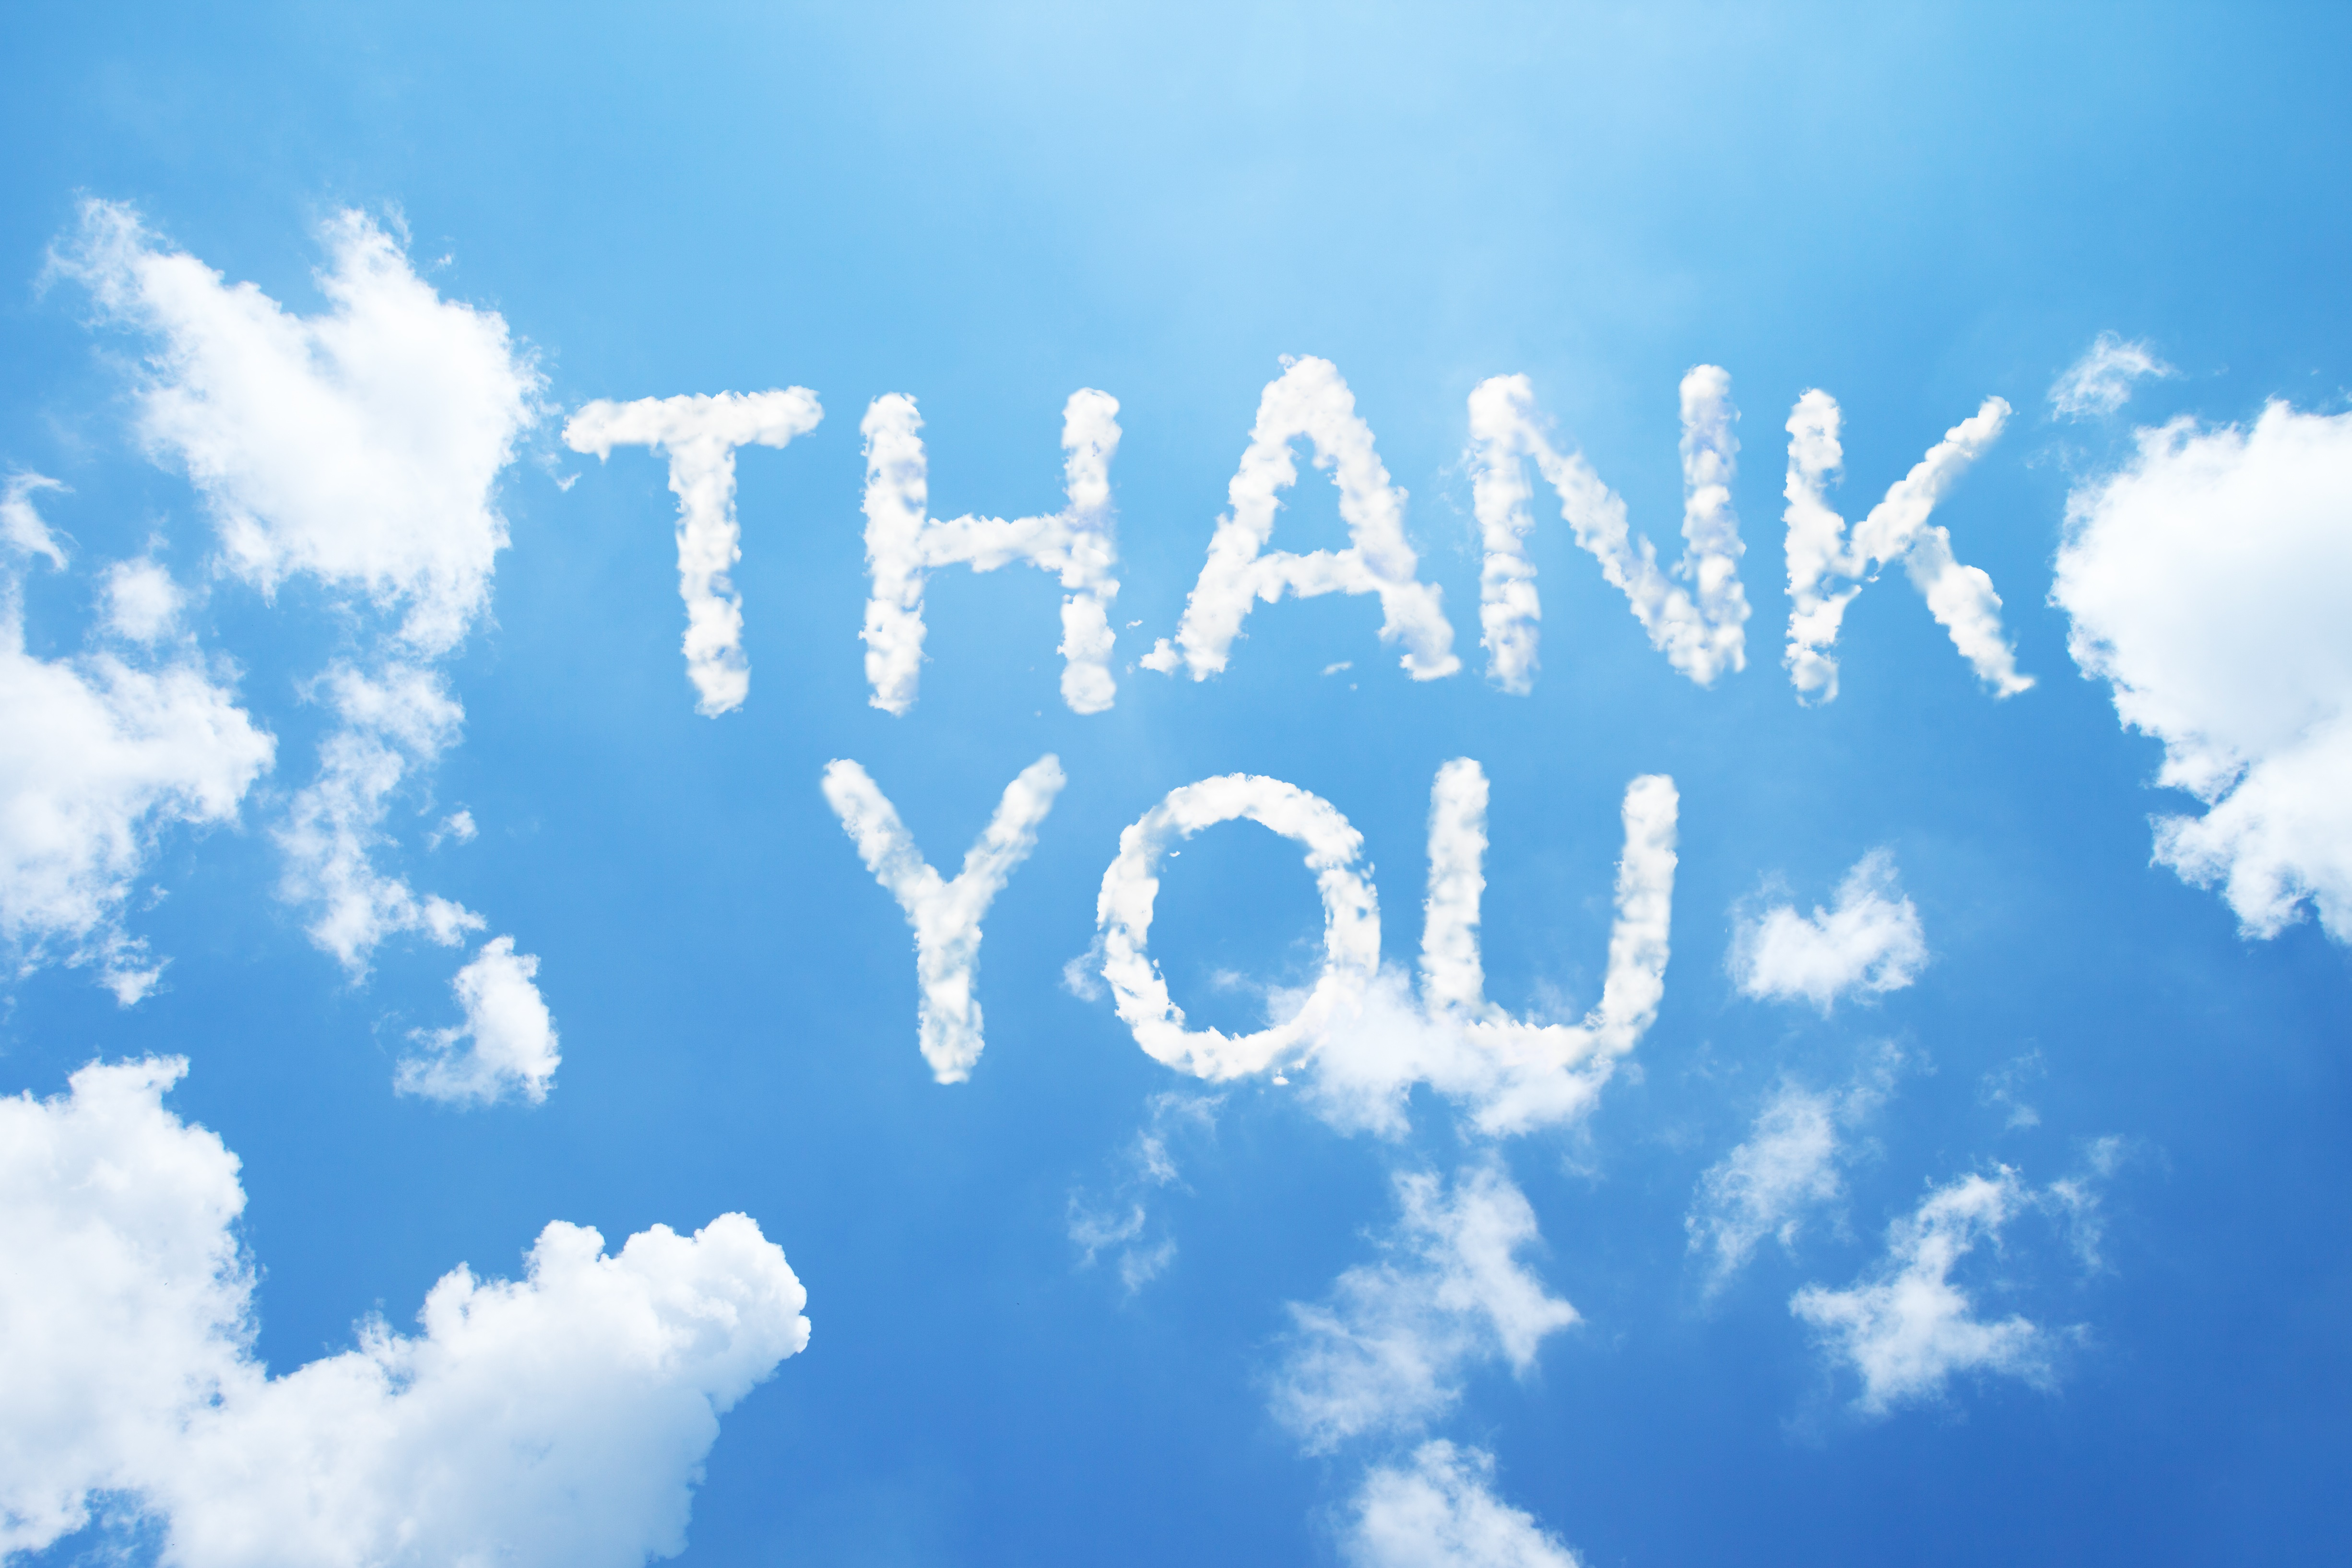 Thank you is written out in a blue sky.